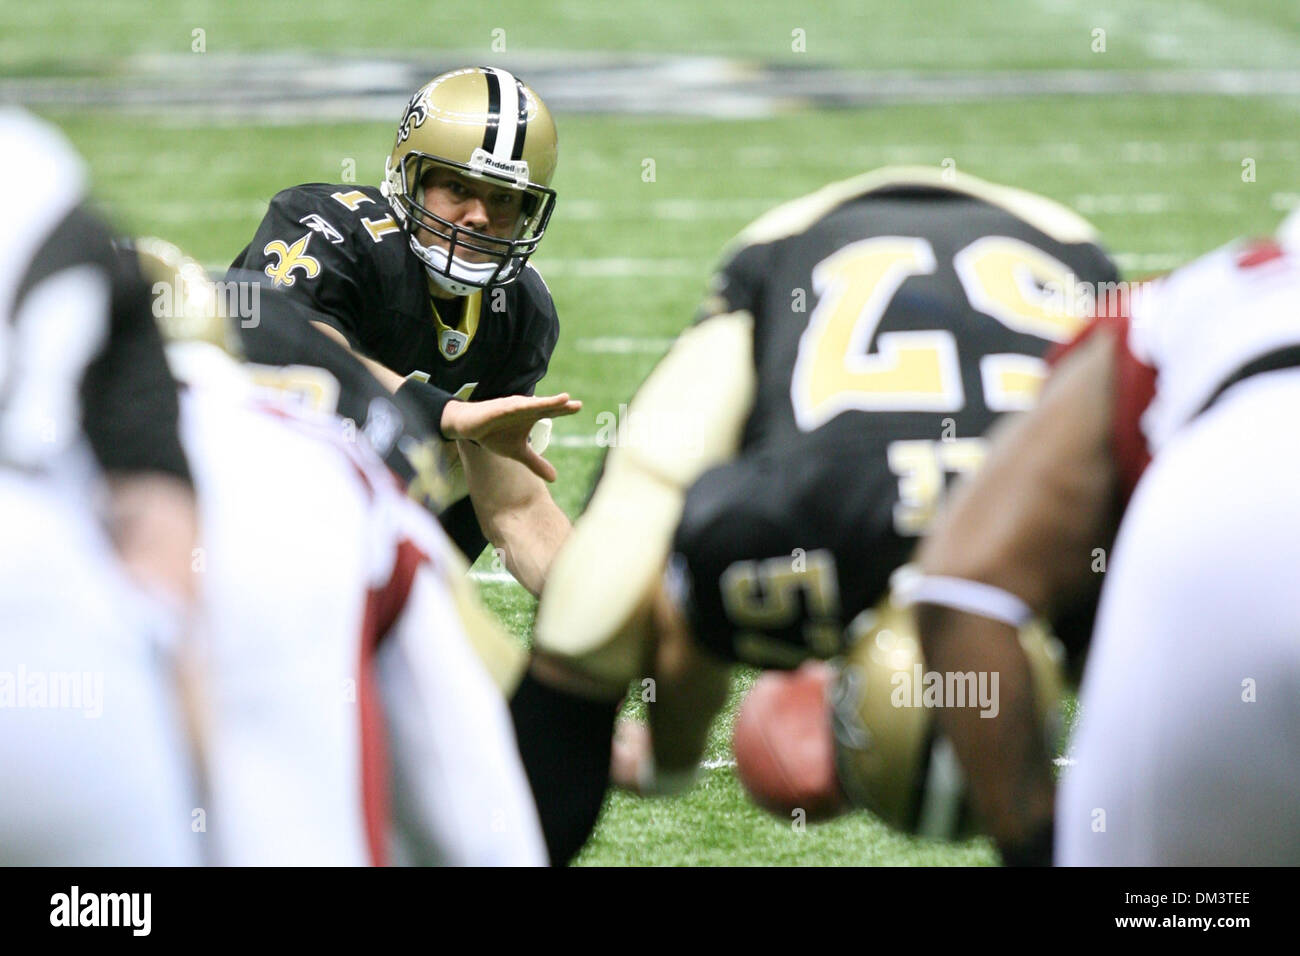 16 January 2010:  Saints backup quarterback Mark Brunell (11) holds the ball for an extra point during game action between the Arizona Cardinals and the New Orleans Saints at the Louisiana Superdome in New Orleans, Louisiana. The Saints won 45-14. (Credit Image: © Donald Page/Southcreek Global/ZUMApress.com) - Stock Image